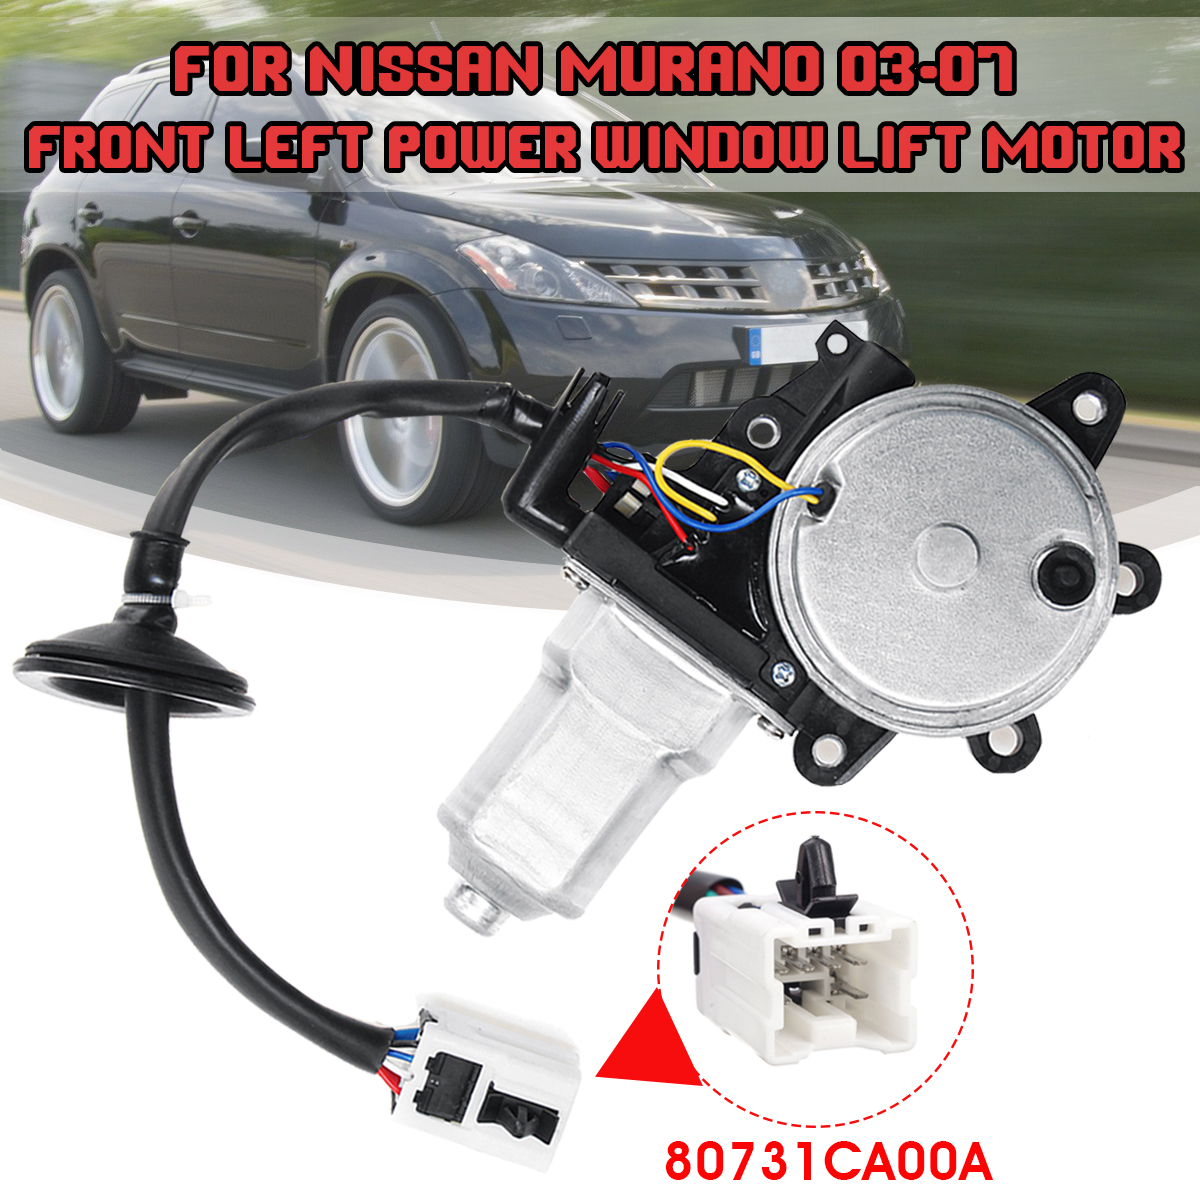 Power Front Left Driver Side LH Window Motor for Nissan Murano 2003 2004 2005 2006 2007 80731CA00A